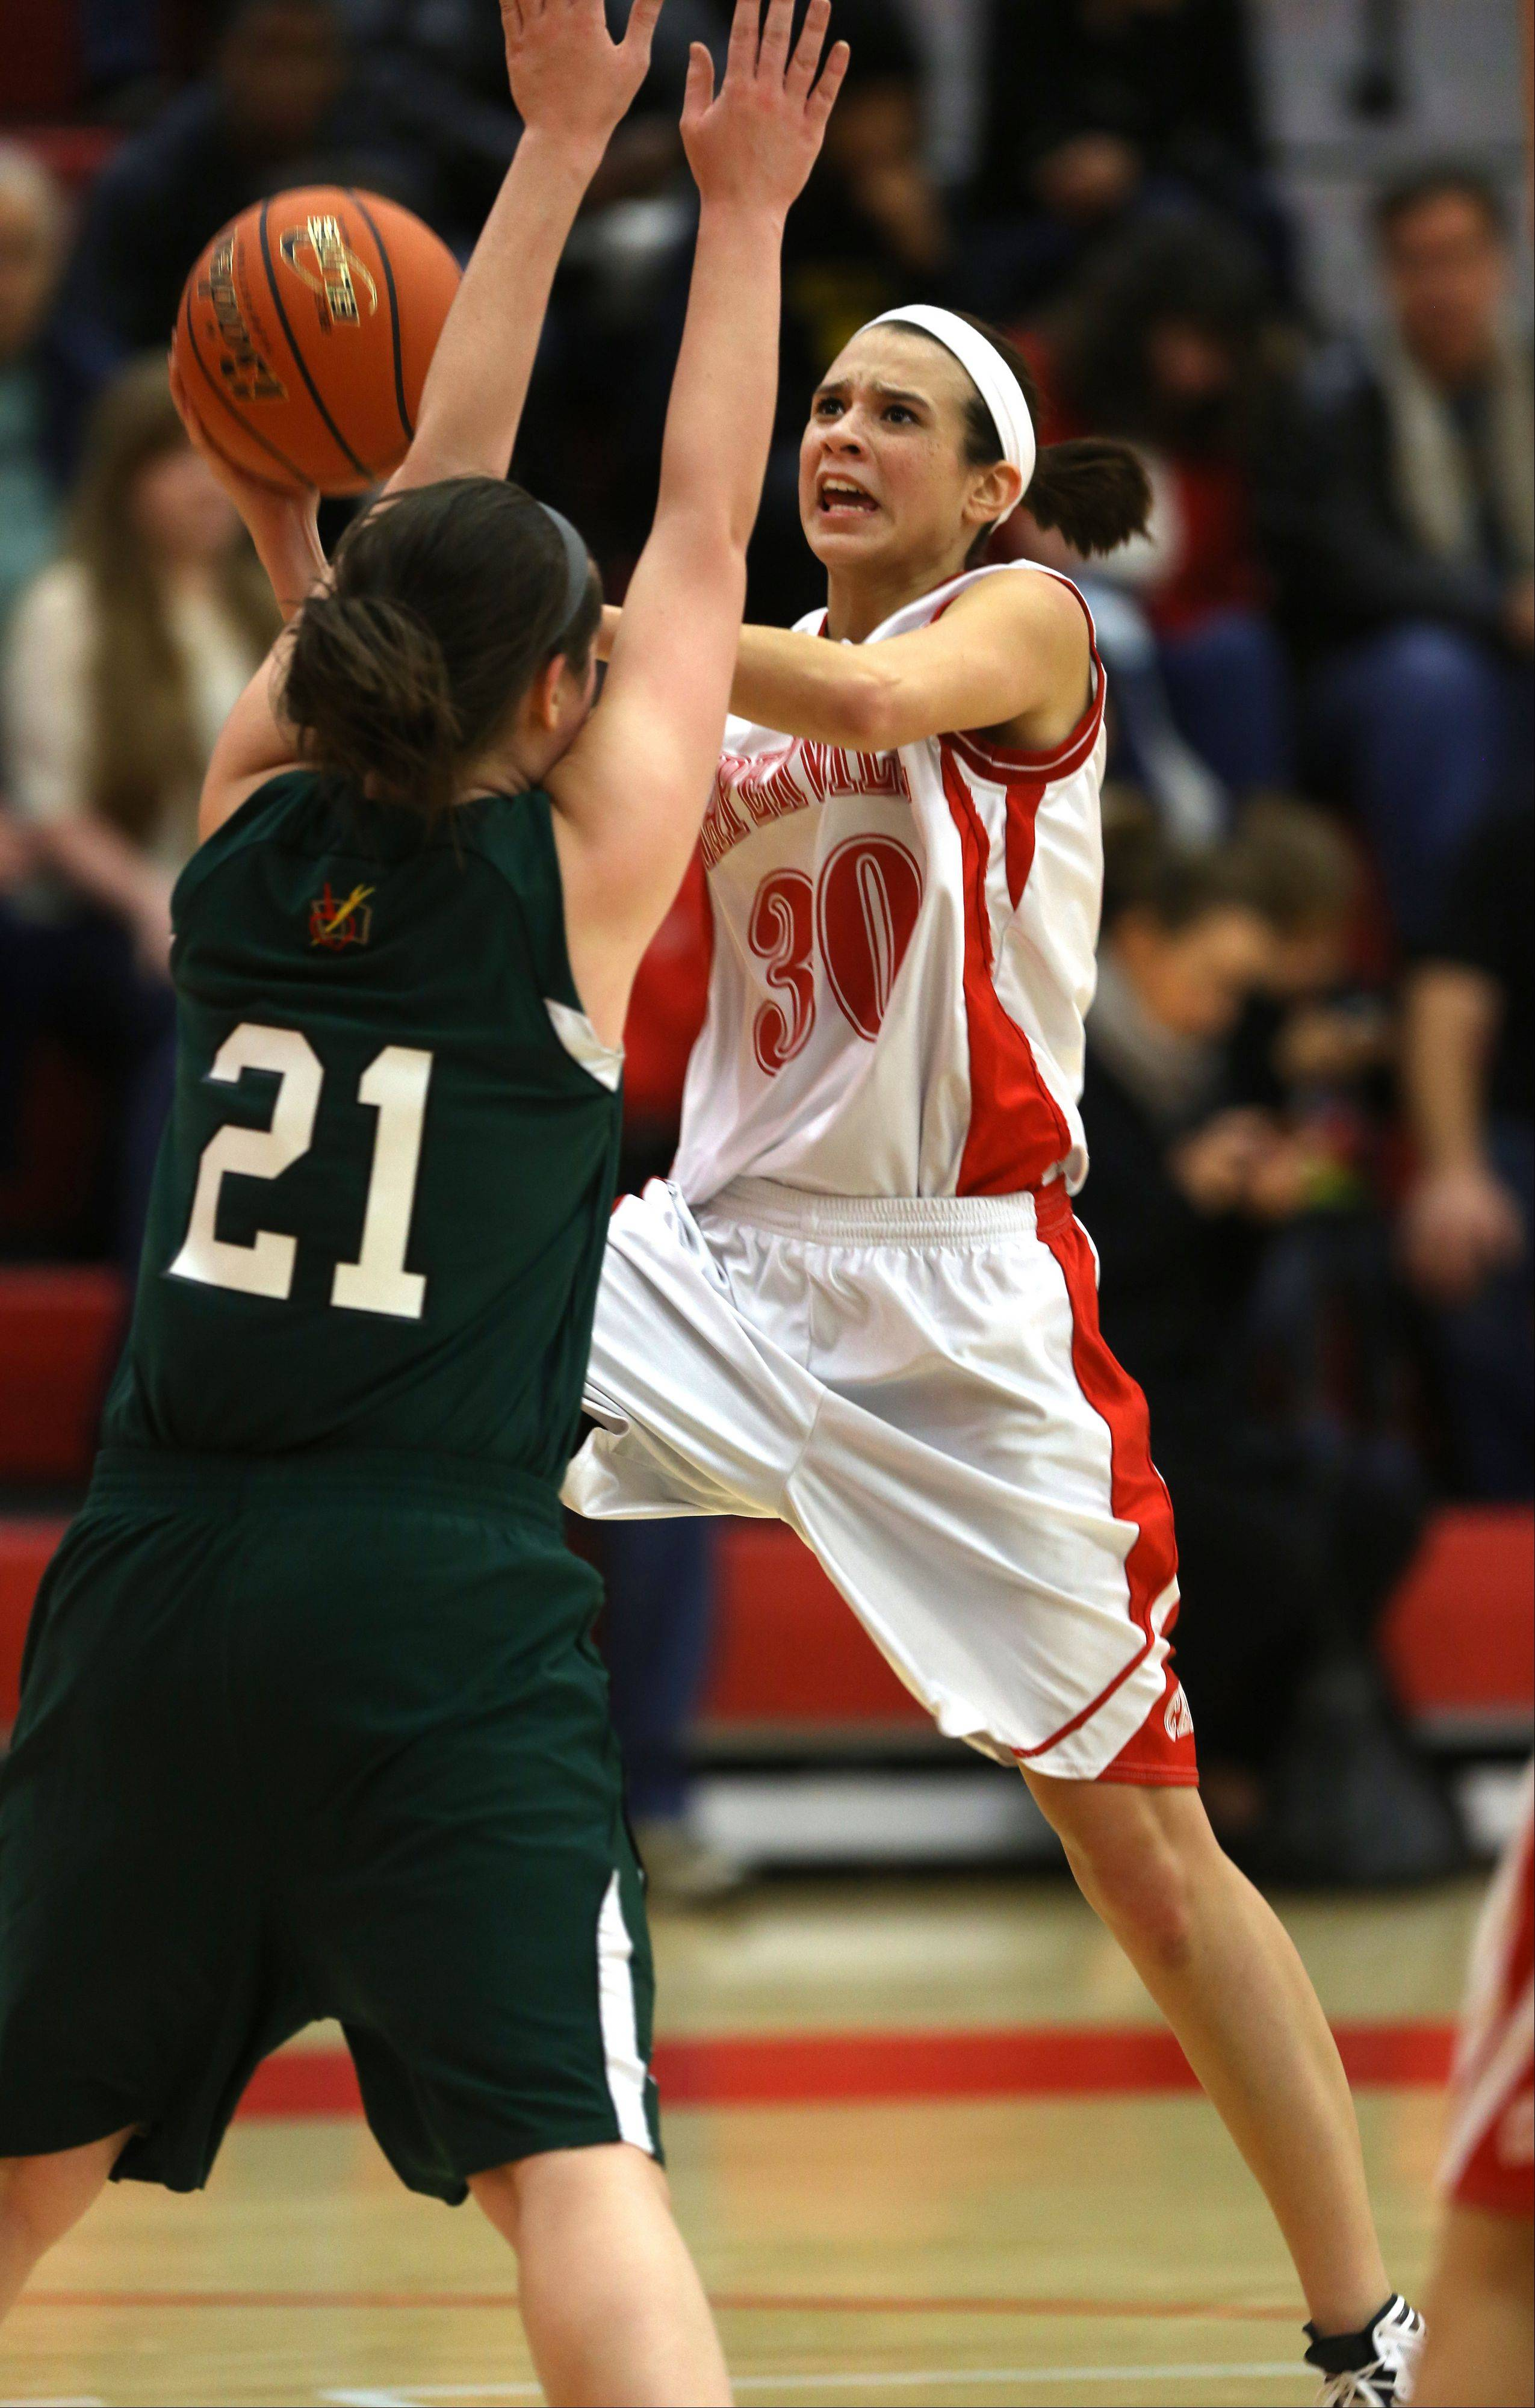 Naperville Central's Shannon Ryan drives the lane against Providence's Mary Fashingbauer (21), during the 2013 girls basketball Tip-Off Tournament.